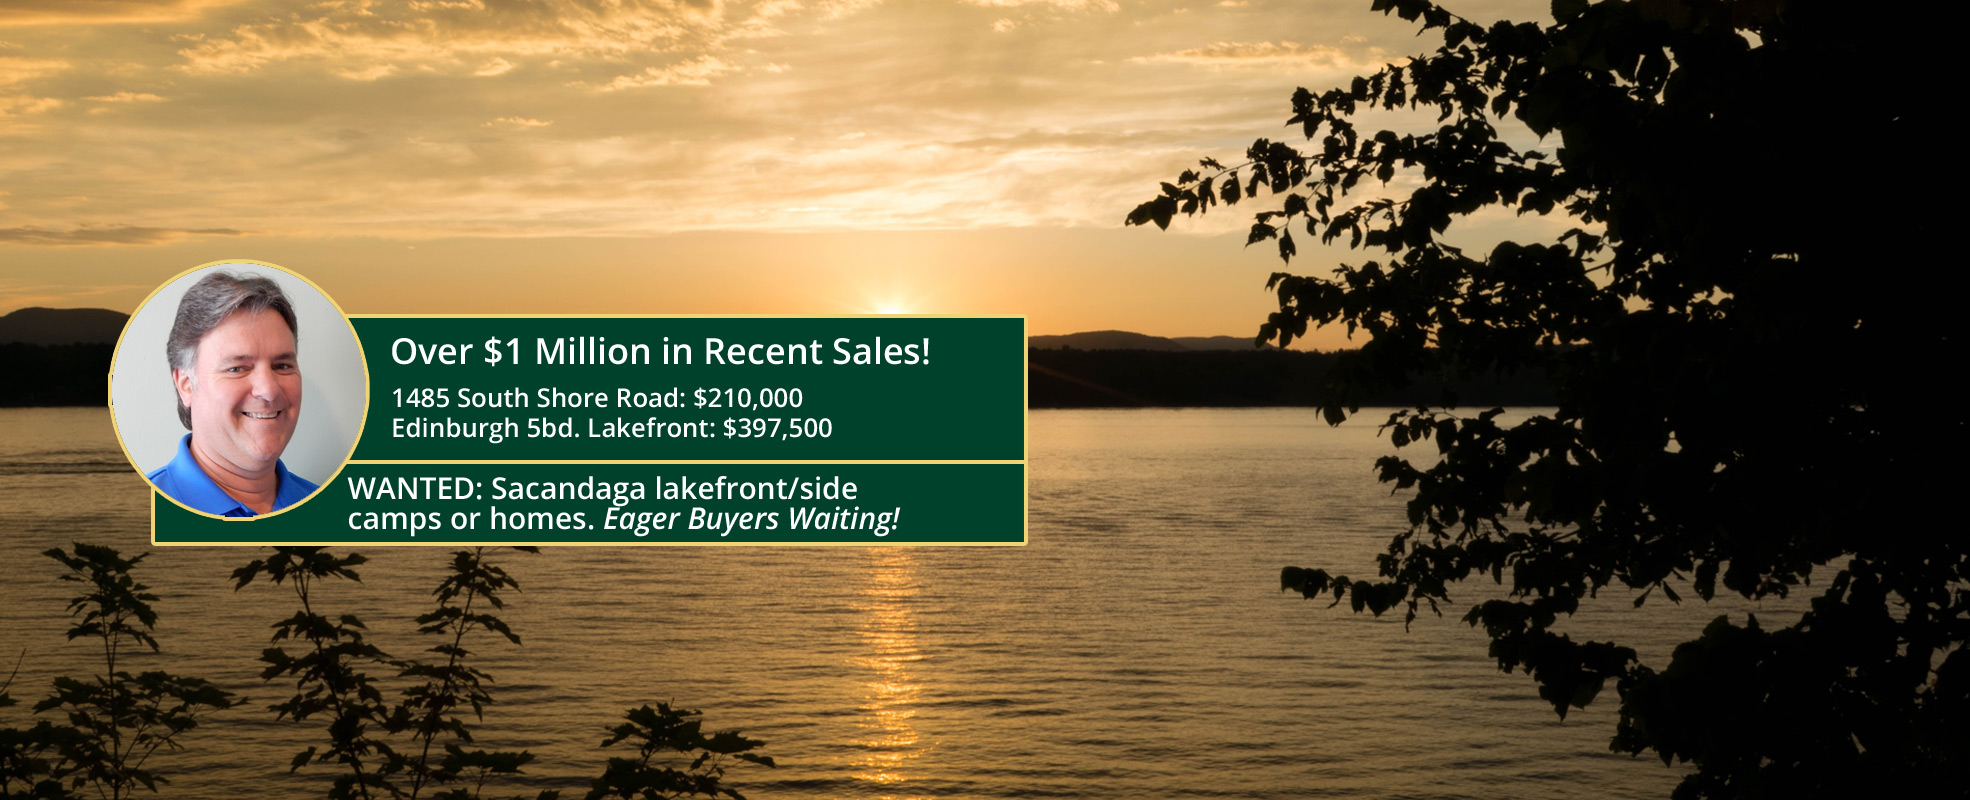 Buy or Sell your property with the Sacandaga Lake Specialists!